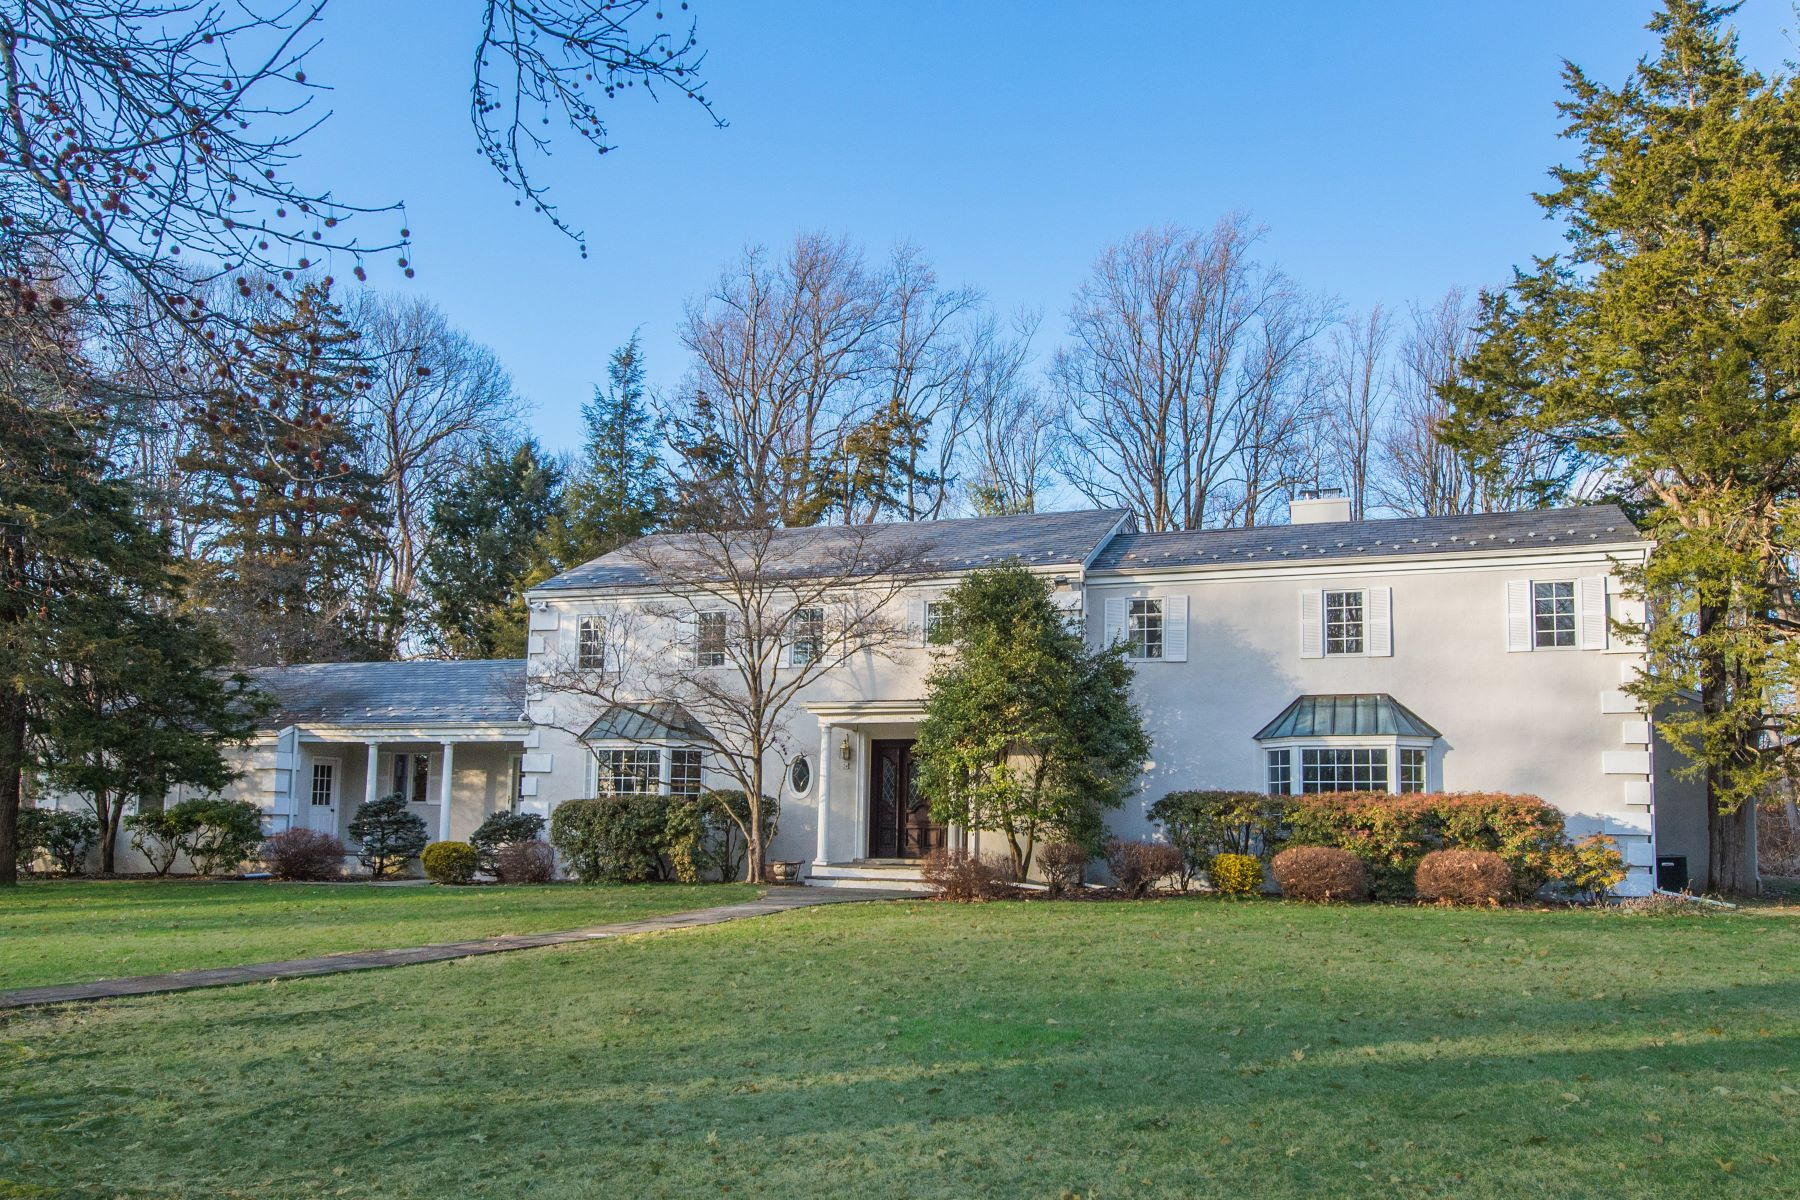 Single Family Homes for Sale at Stately Seven Bedroom Colonial 20 Spencer Place, Harding Township, New Jersey 07960 United States